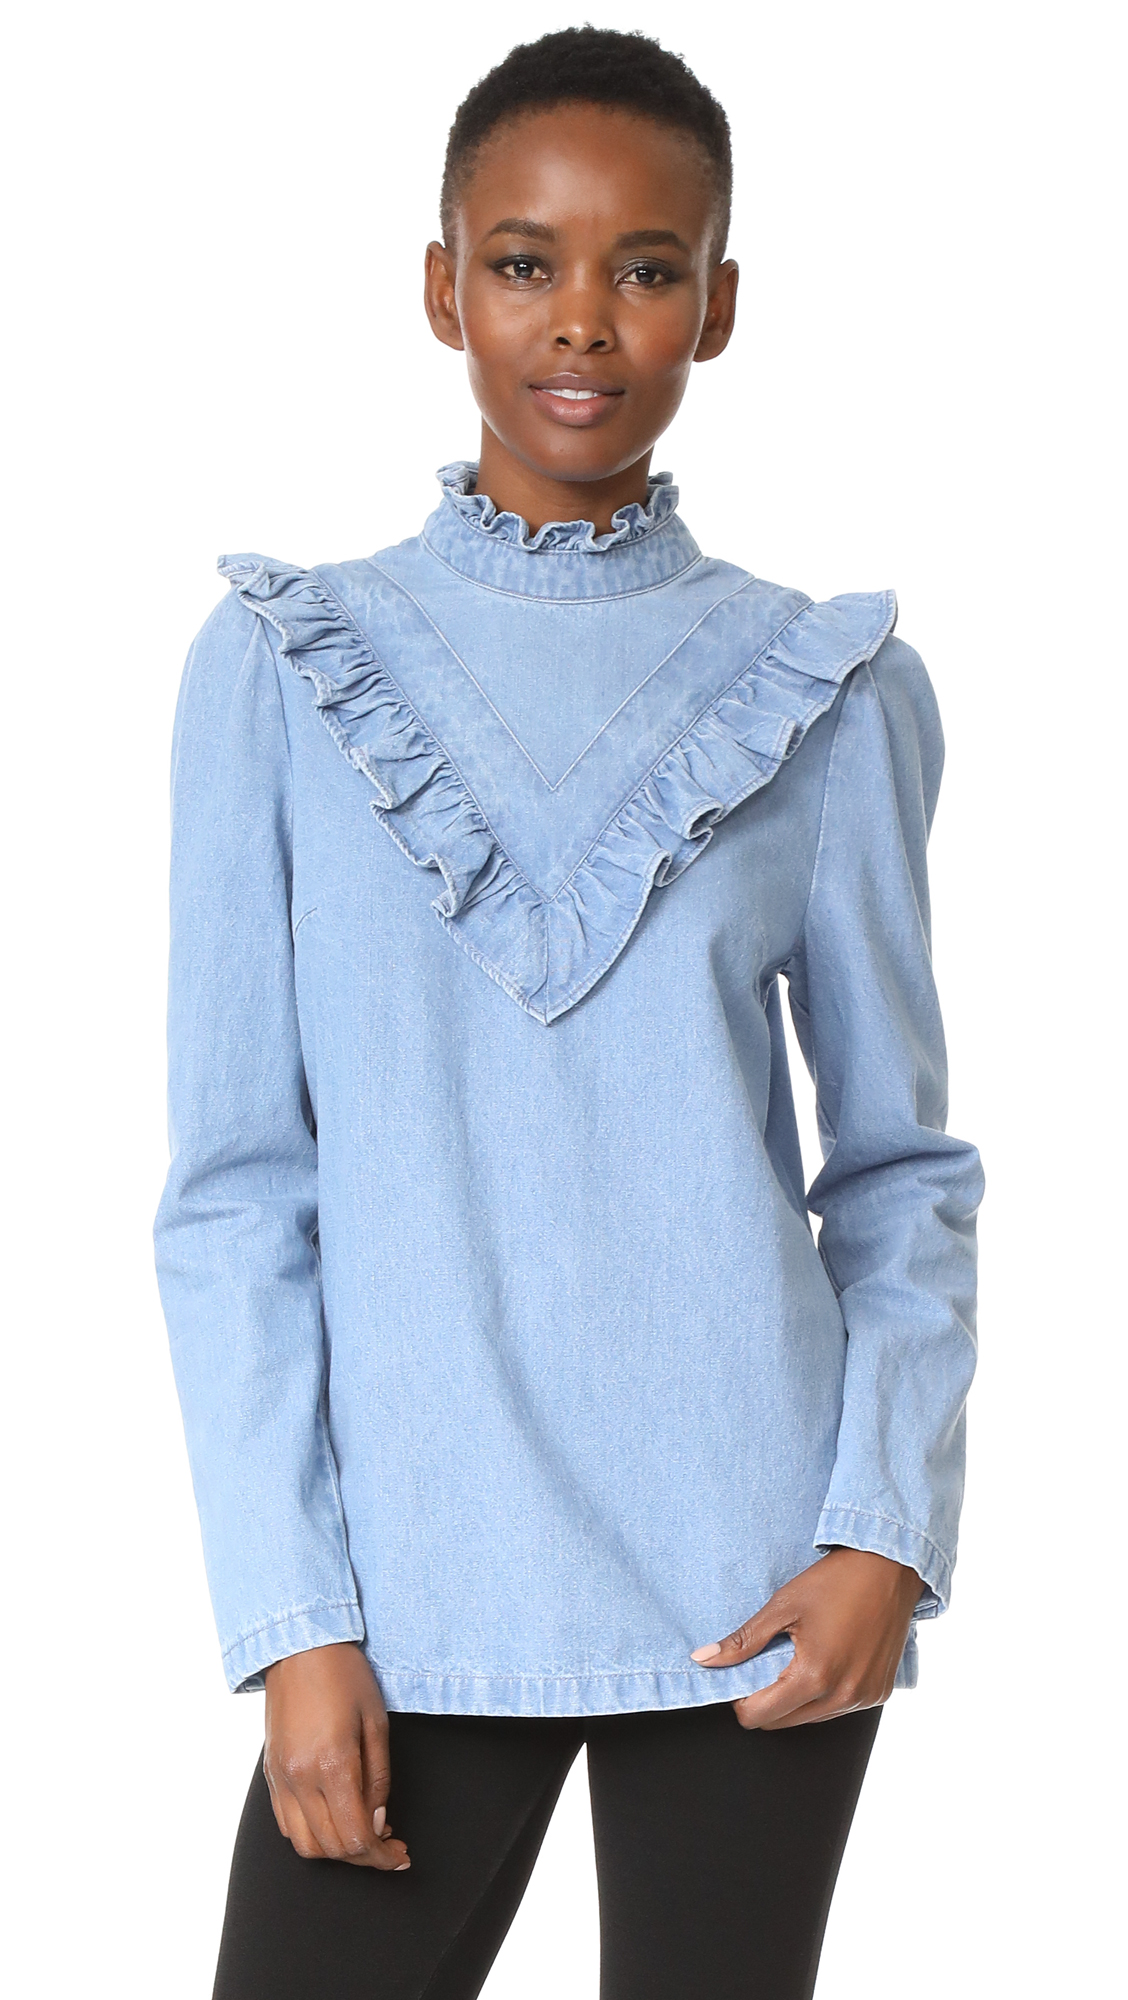 SJYP Ruffle Detail Denim Top - Light Blue